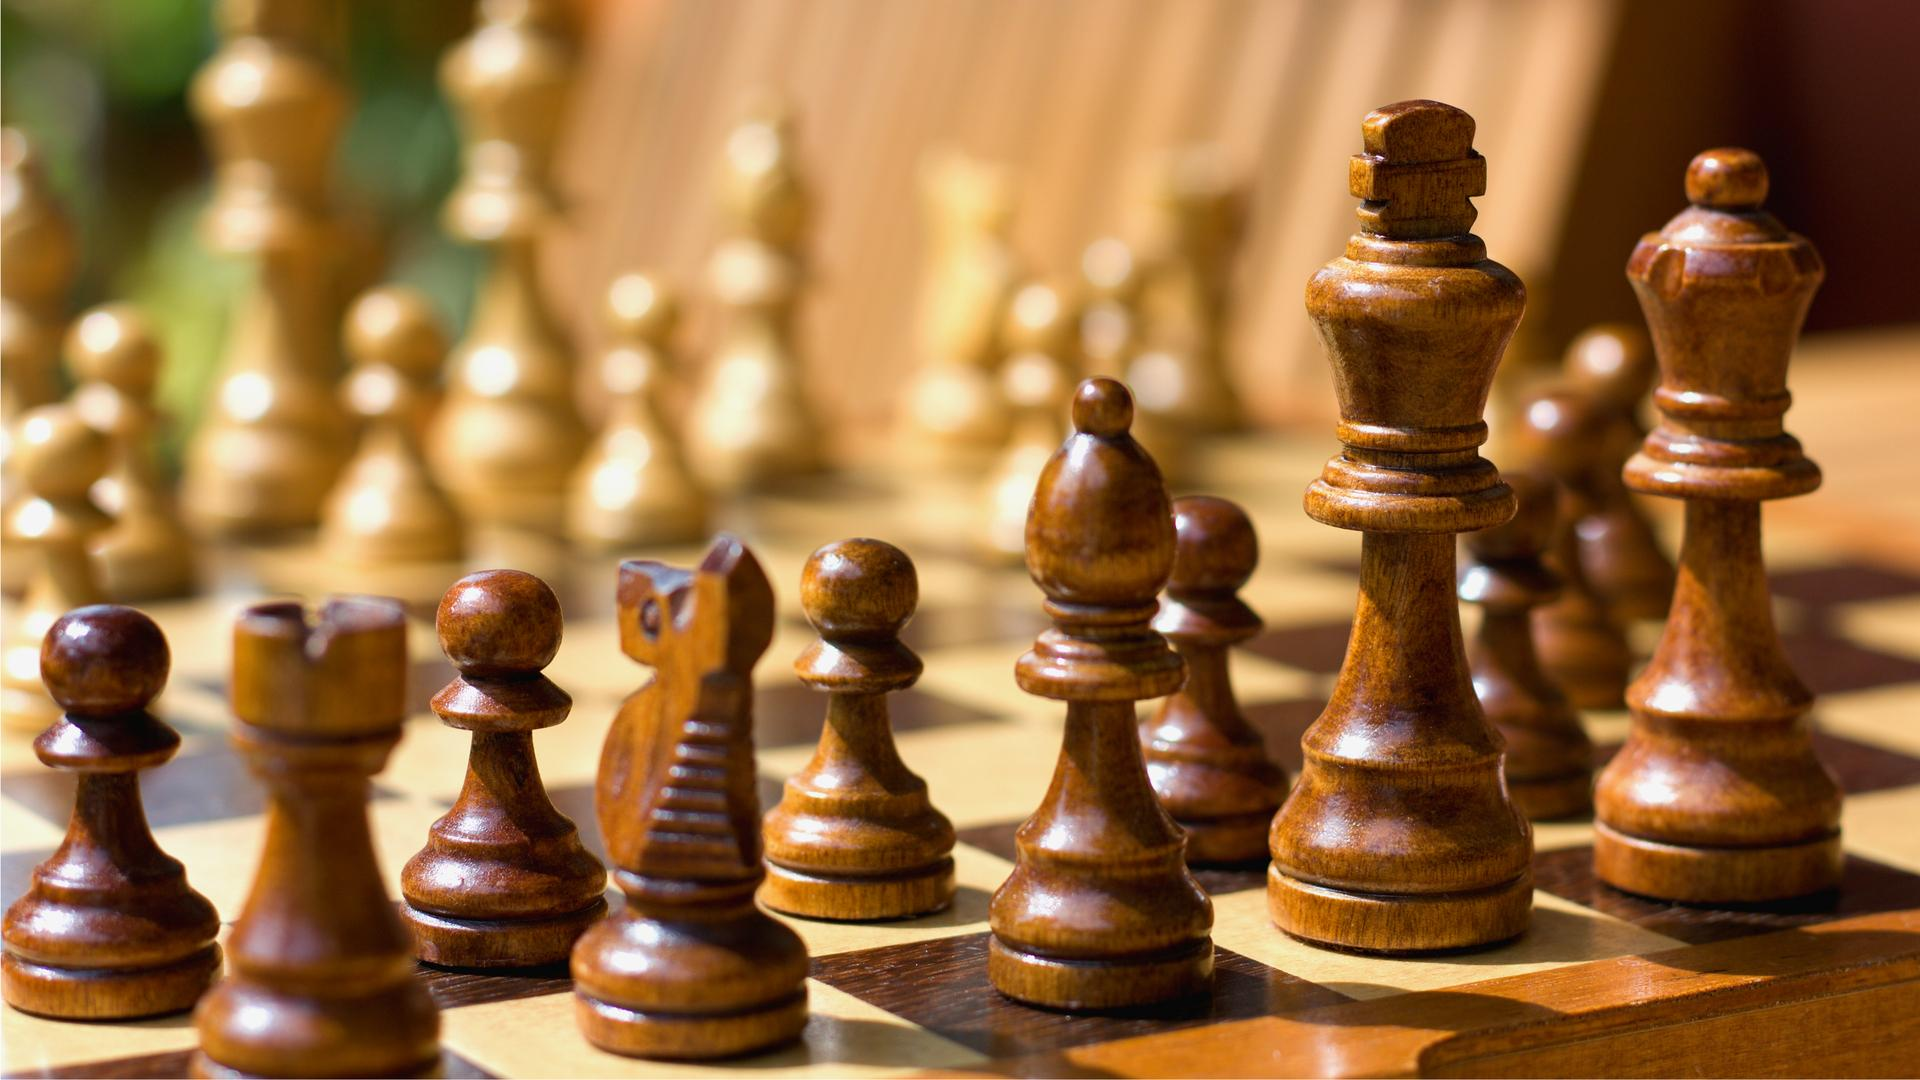 How To Set Up A Chess Game - Chess.com